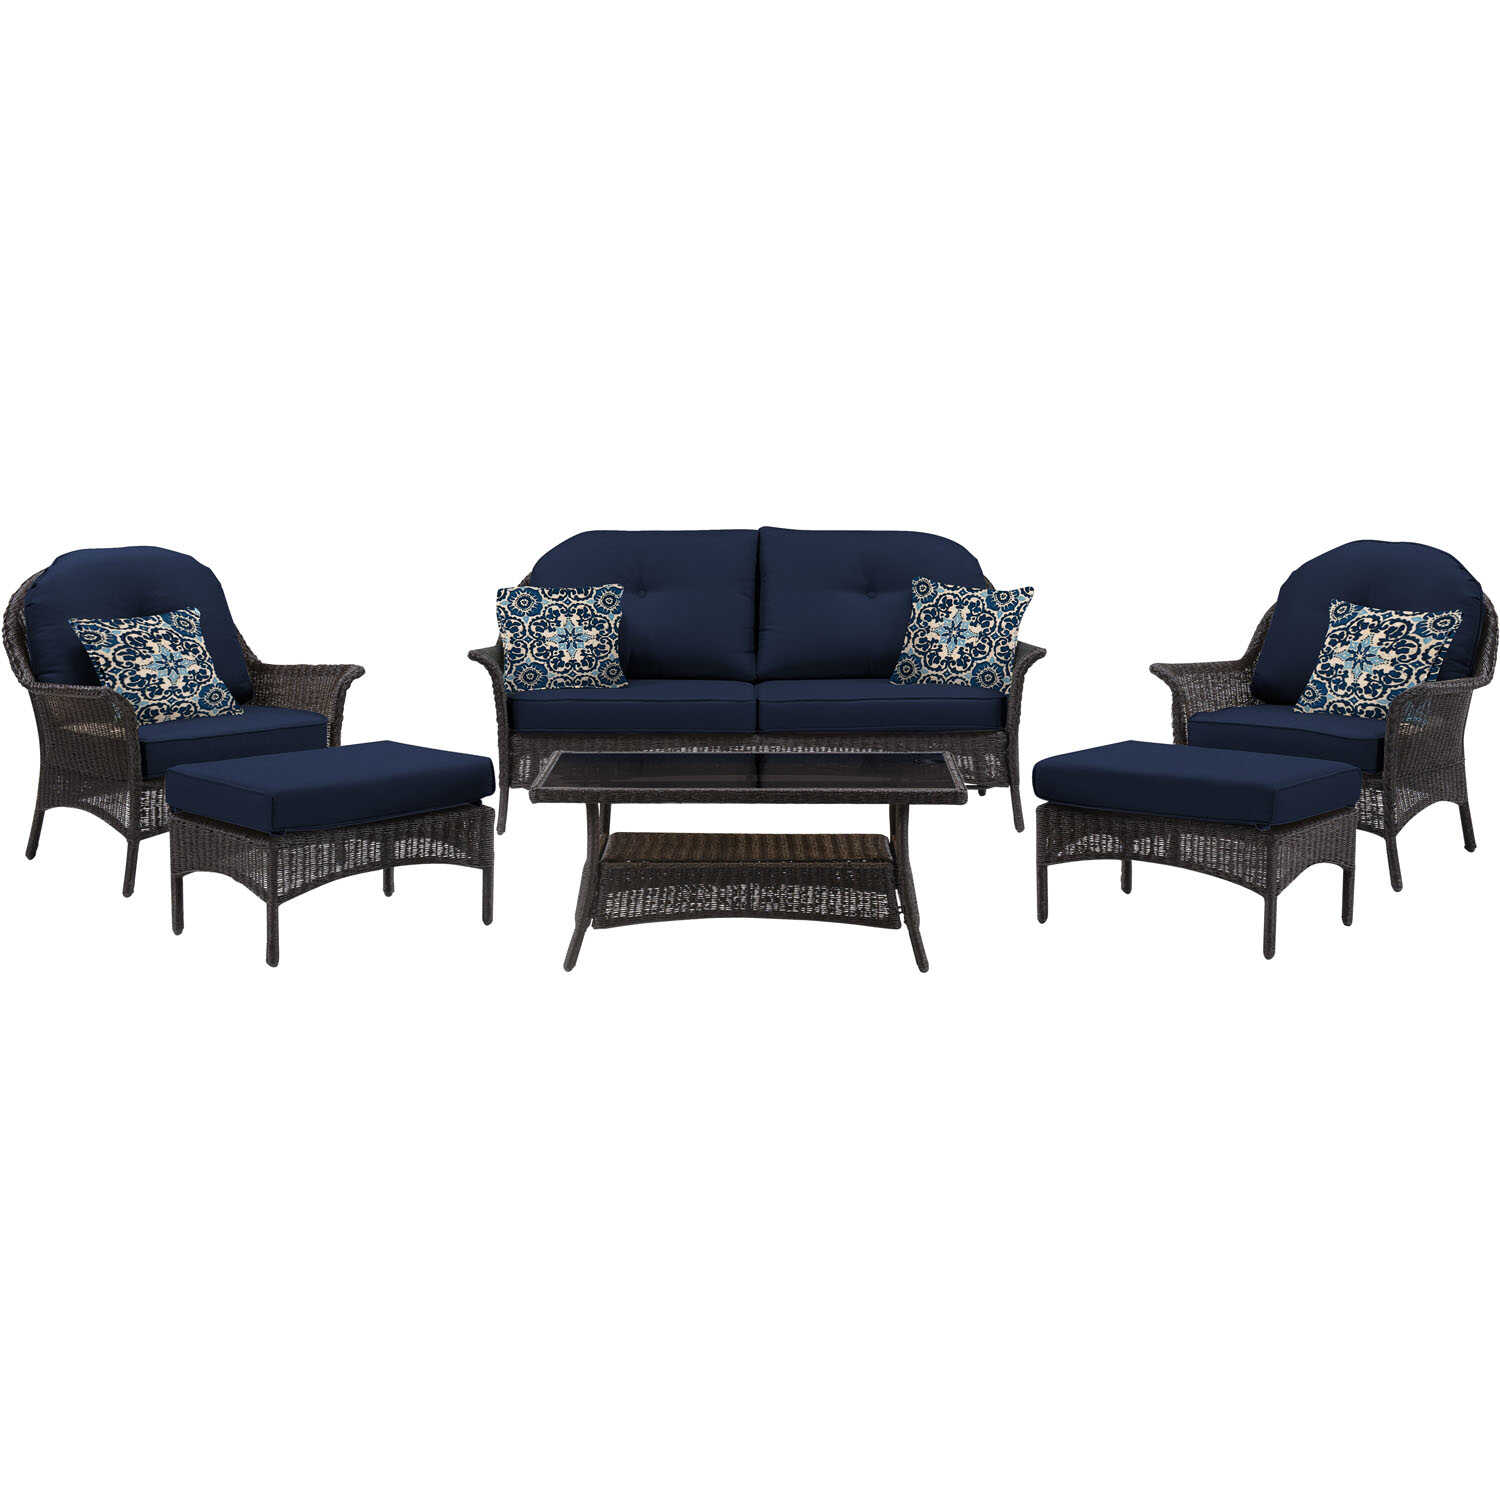 Hanover  San Marino  6 pc. Java  Steel  Patio Set  Navy Blue